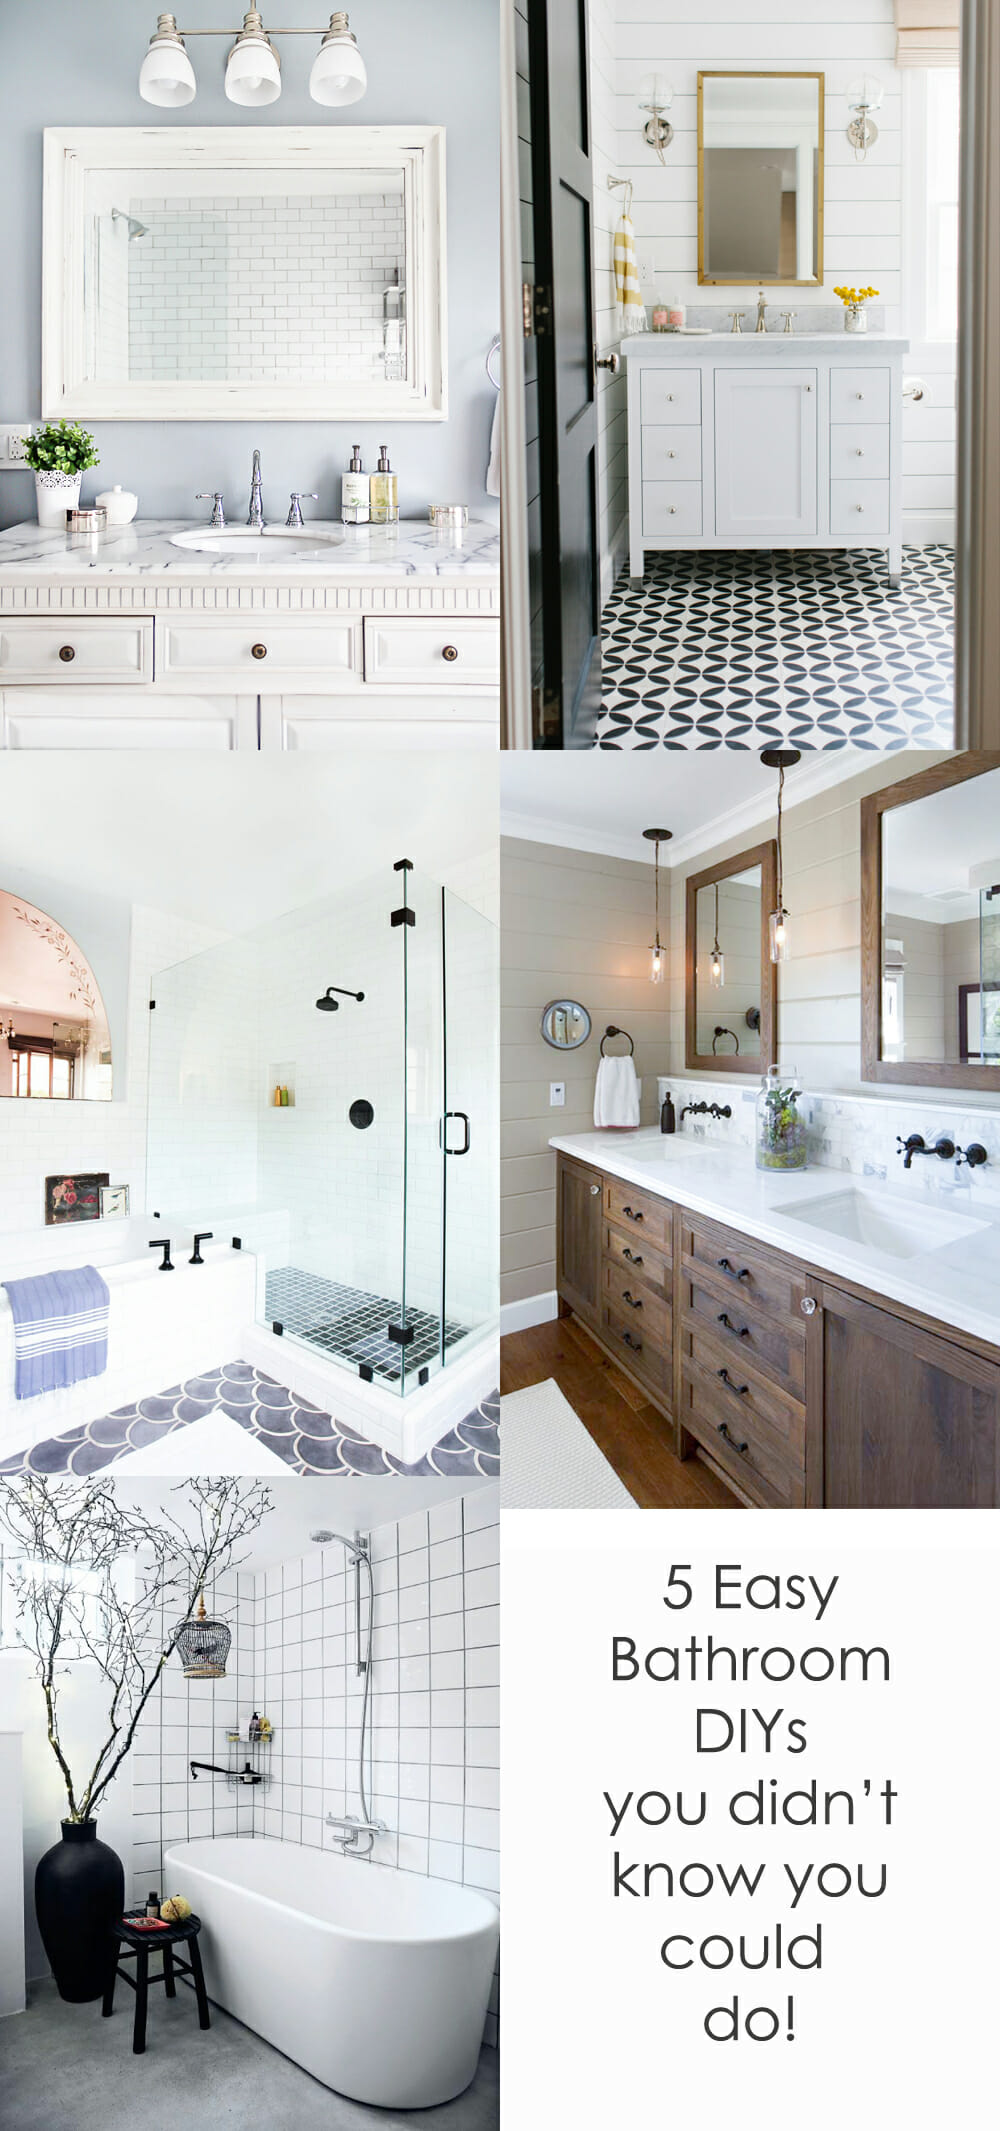 Diy Bathroom Remodel Ideas bathroom remodel ideas and inspiration for your home